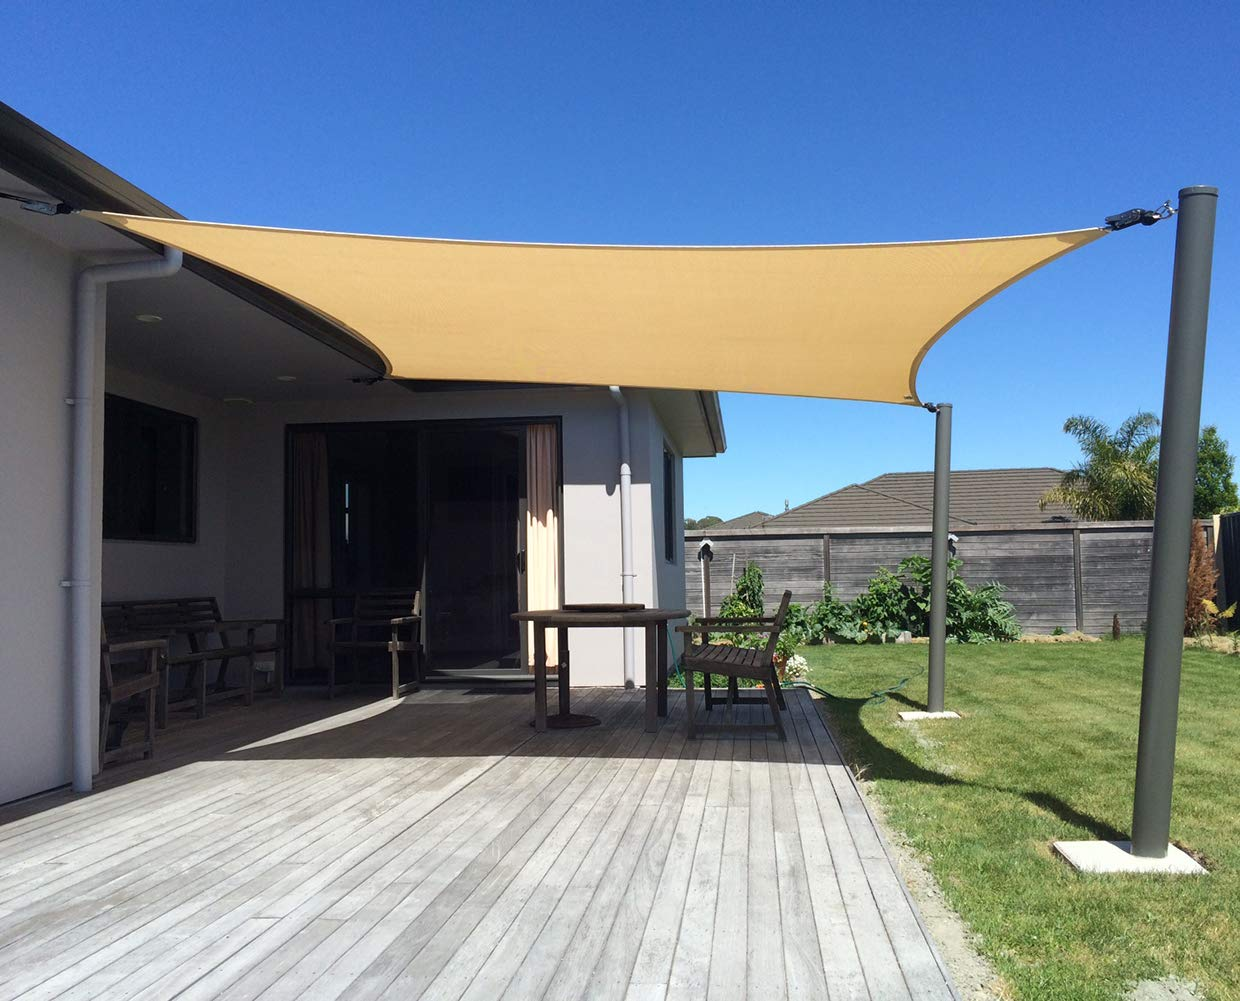 SUNNY GUARD 12' x 16' Sand Rectangle Sun Shade Sail UV Block for Outdoor Patio Garden by SUNNY GUARD